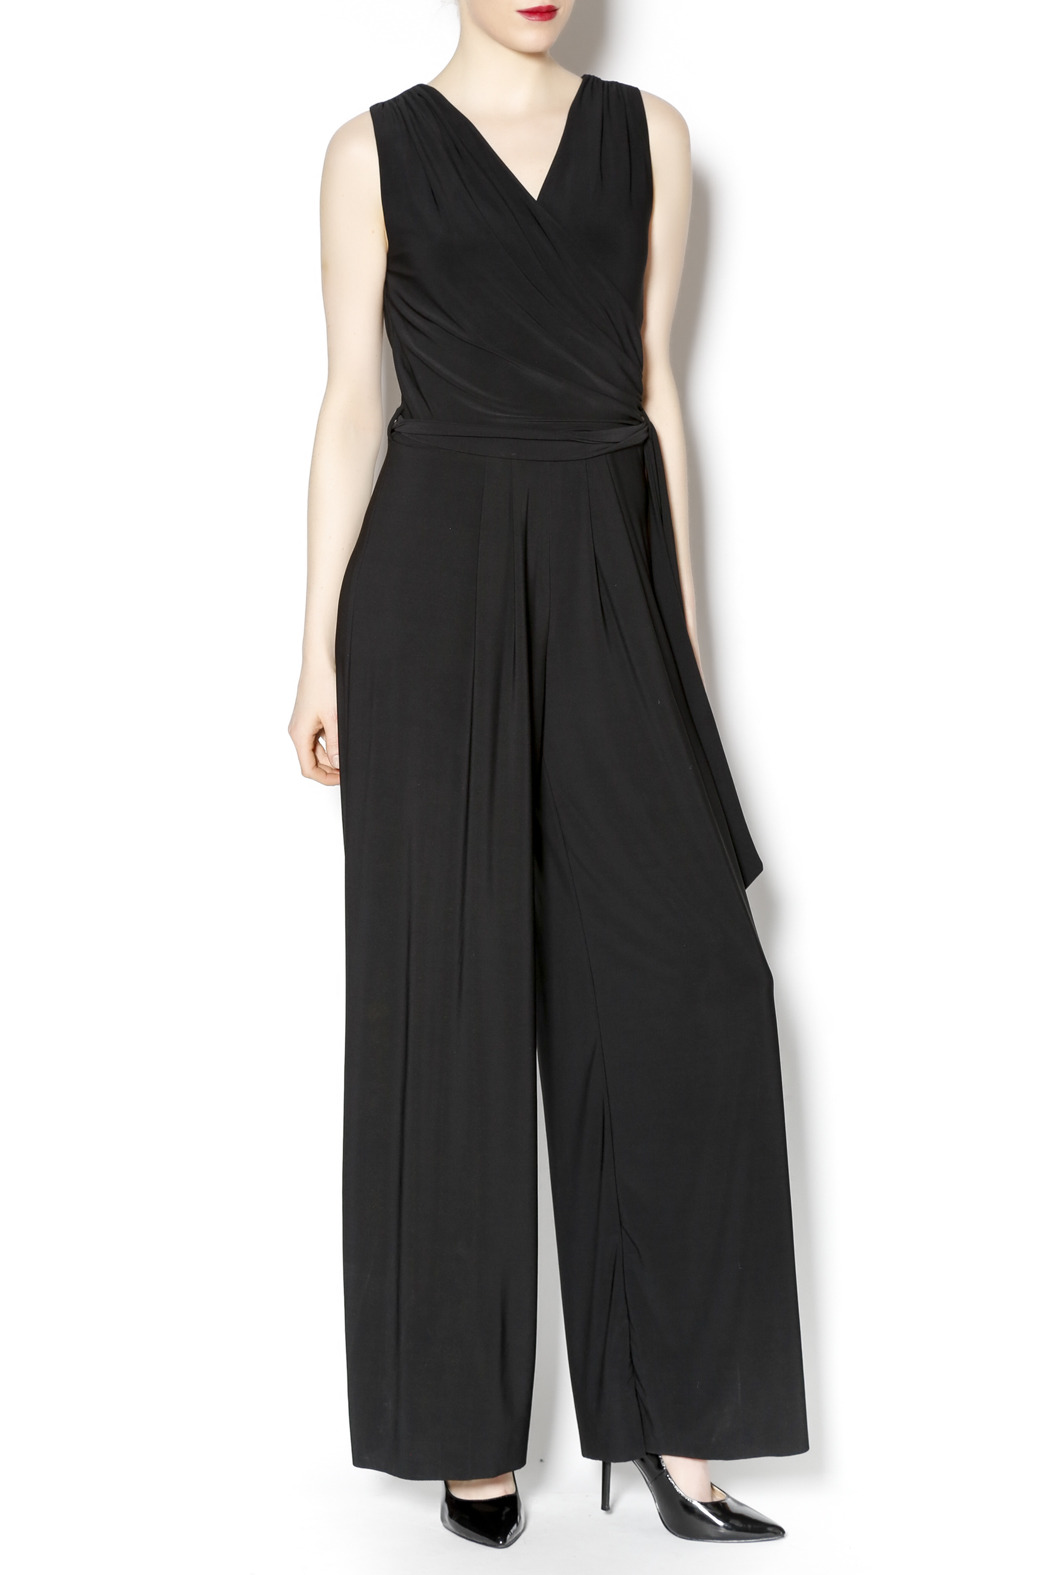 Last Tango Belted Black Jumpsuit - Front Cropped Image